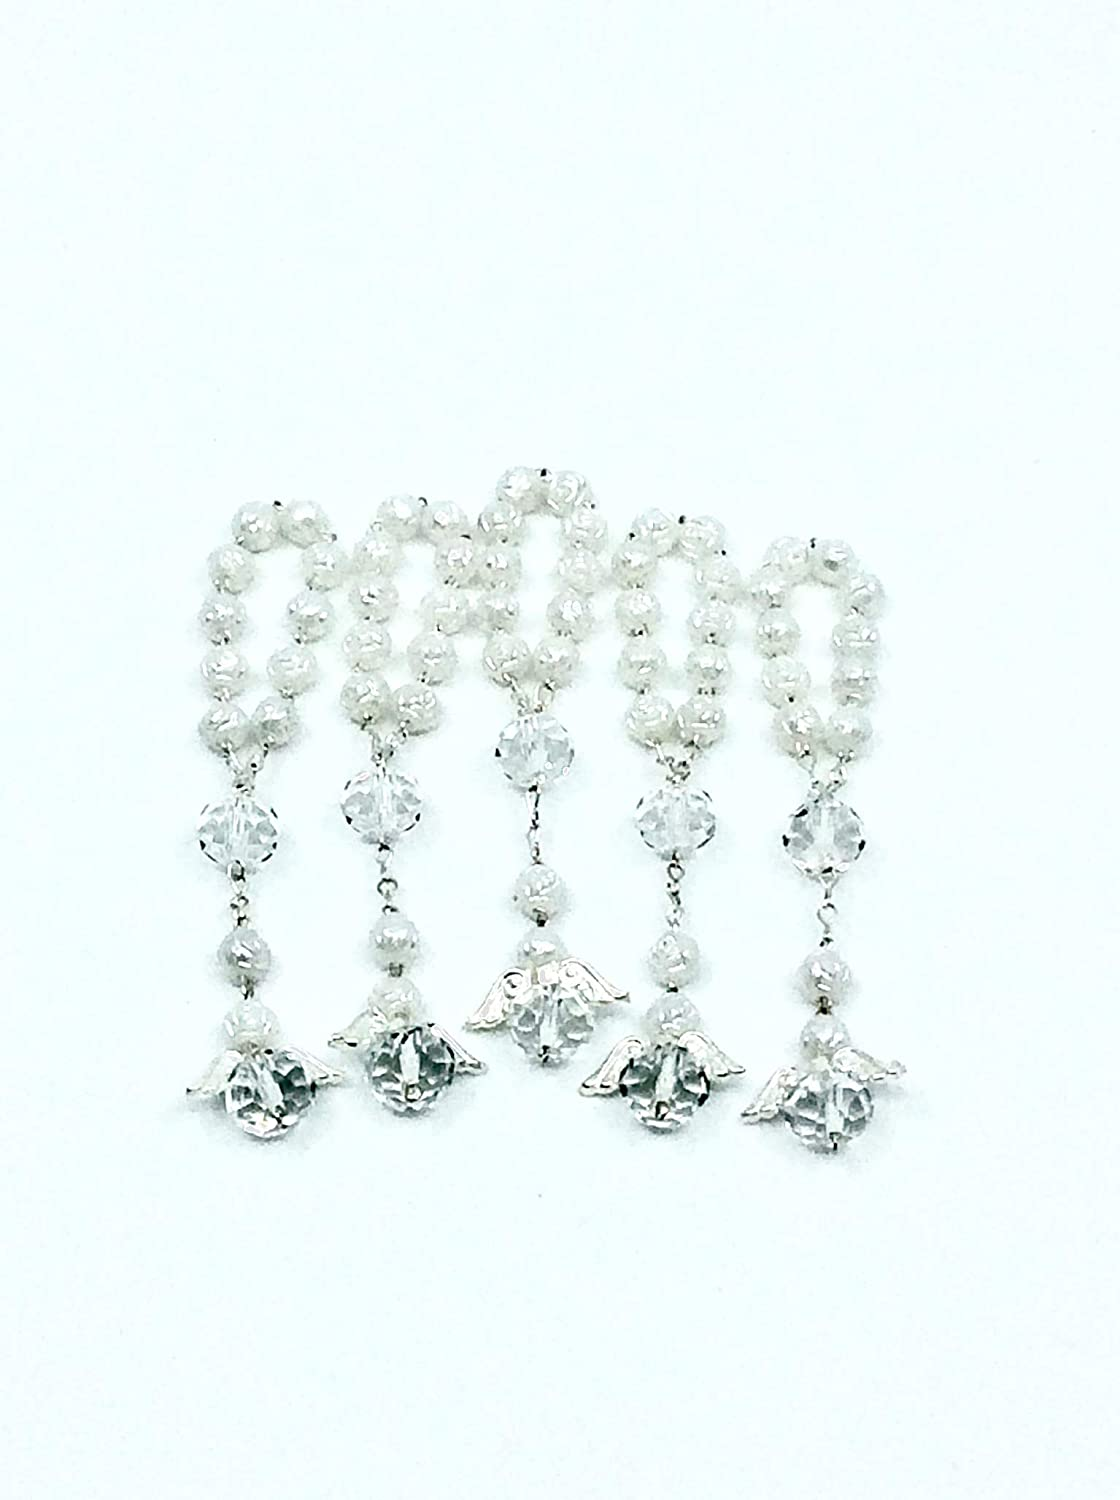 // 25 Pc White Baptism Favors with Angels Mini Rosaries Silver Plated Acrylic Beads//Recuerditos De Bautismo//Christening Favors//Decenarios//